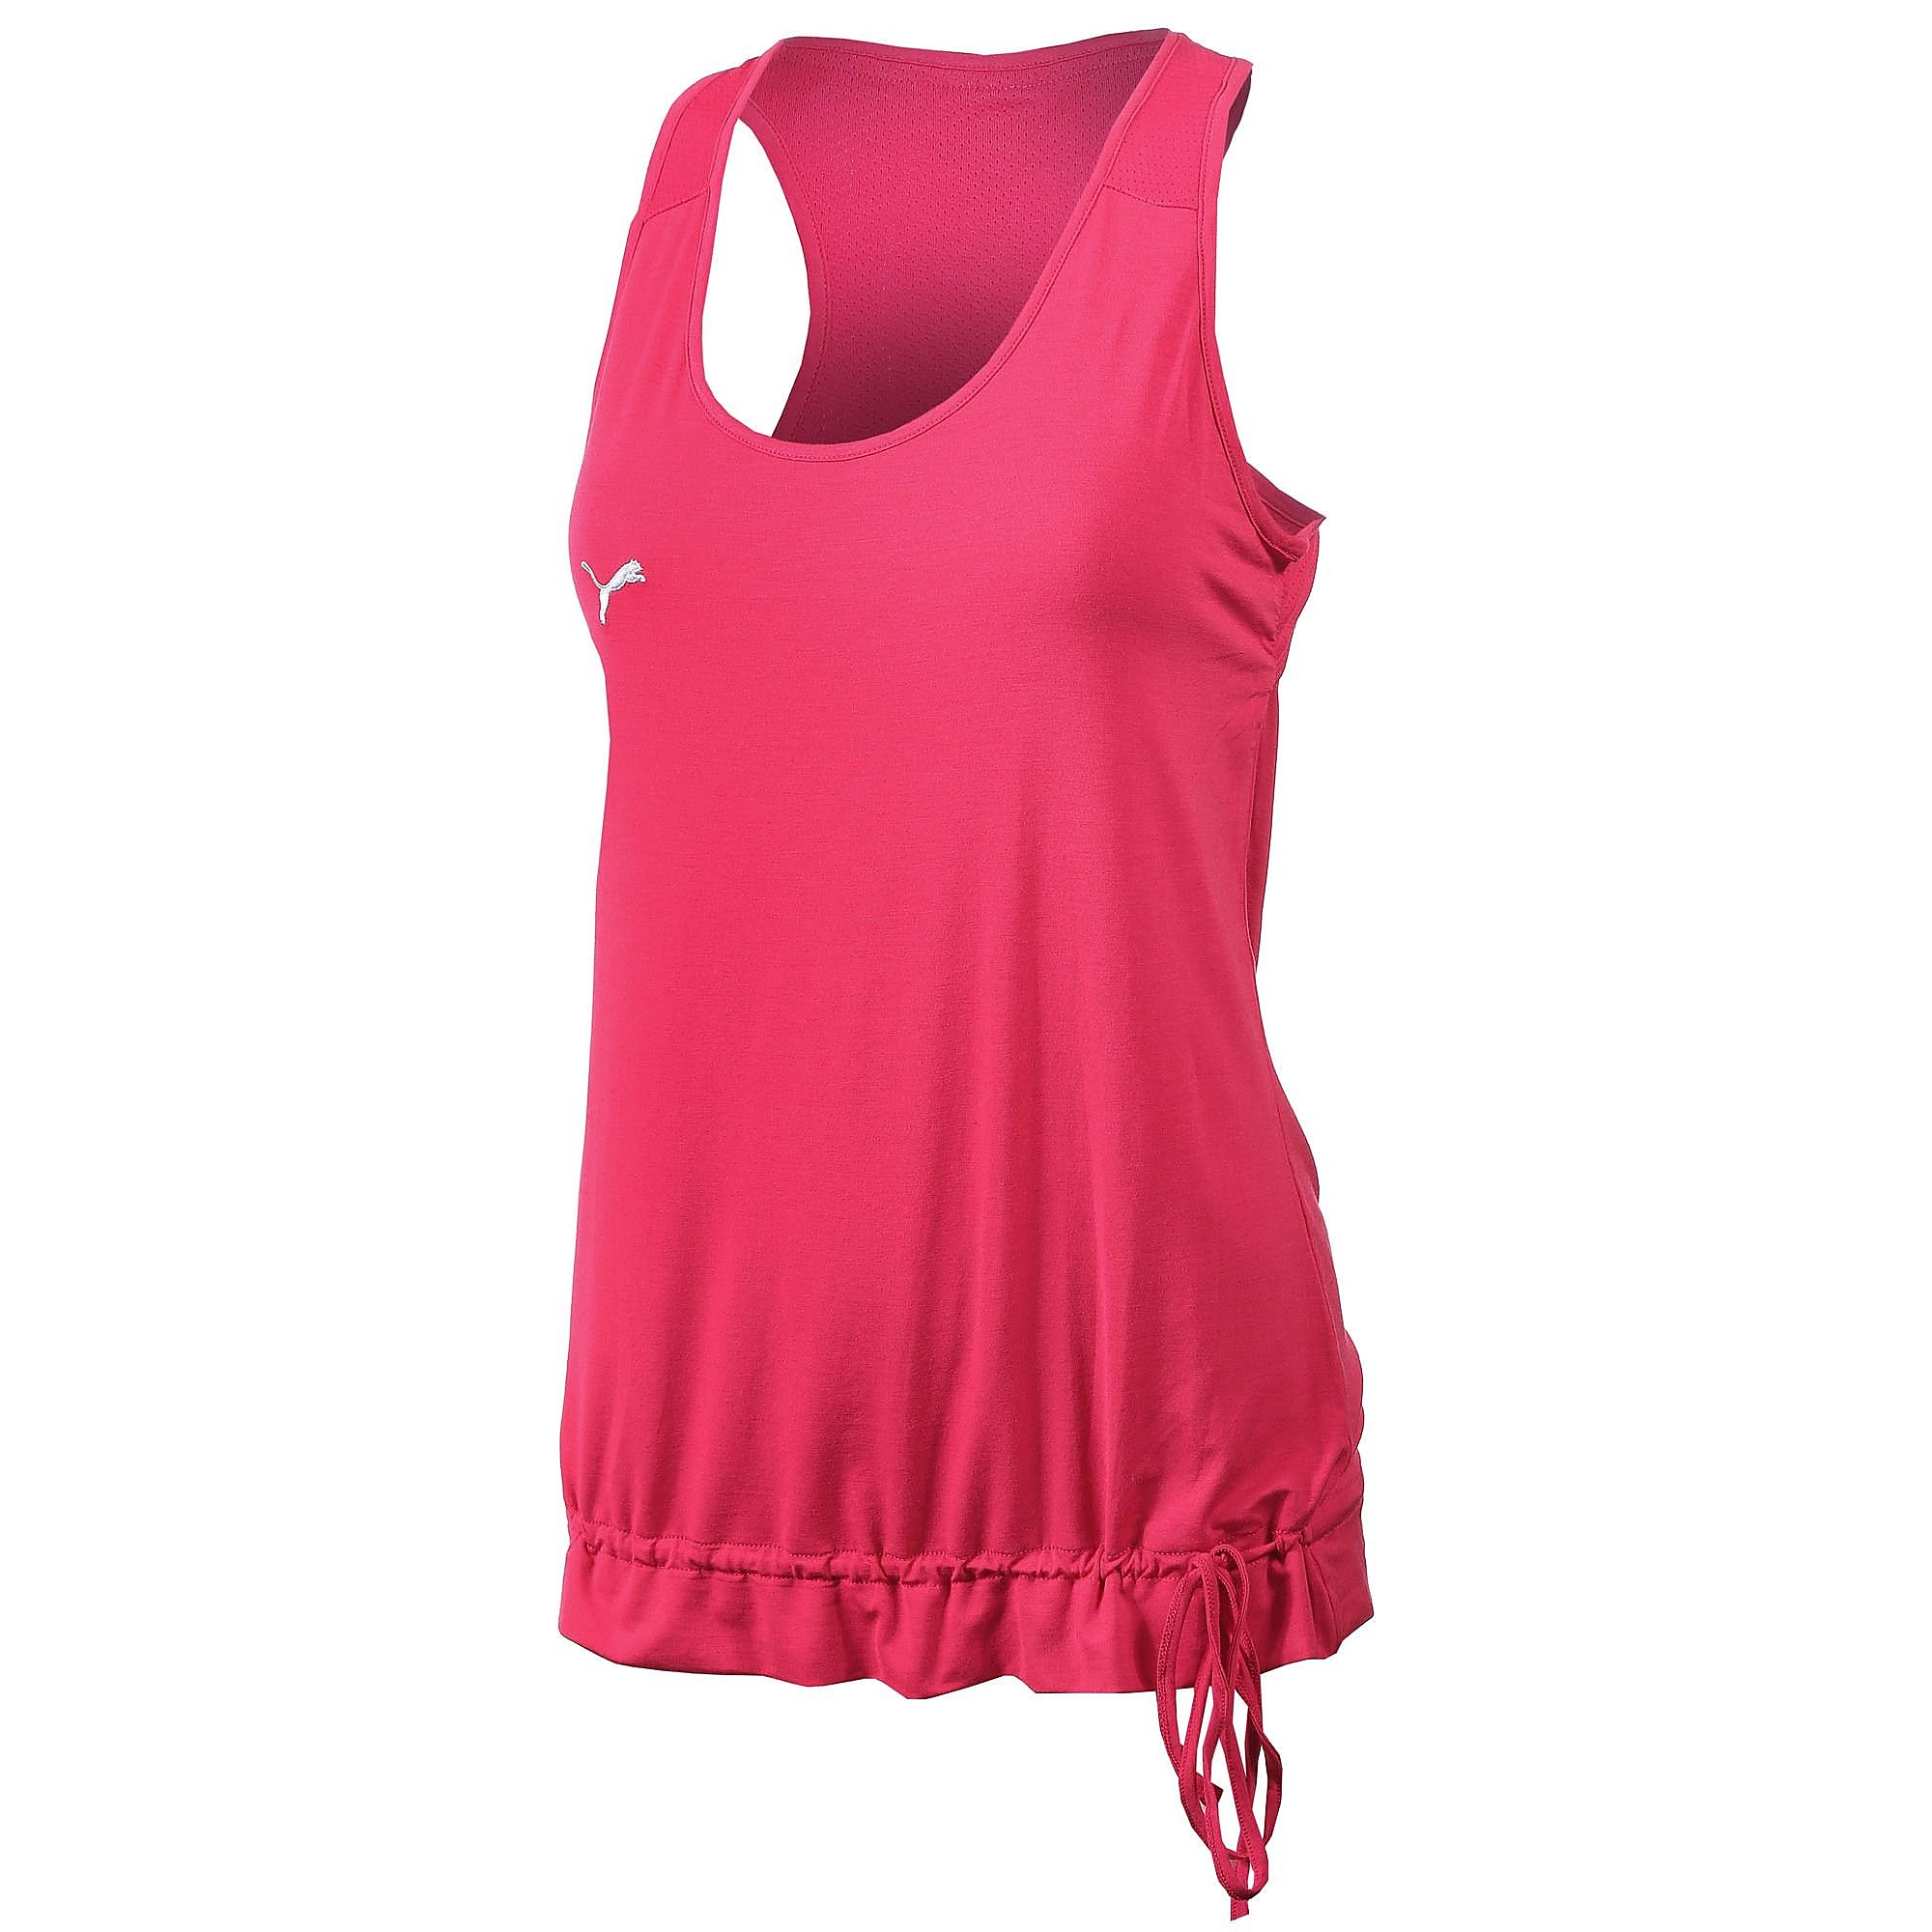 PUMA ACTIVE FOREVER TANK